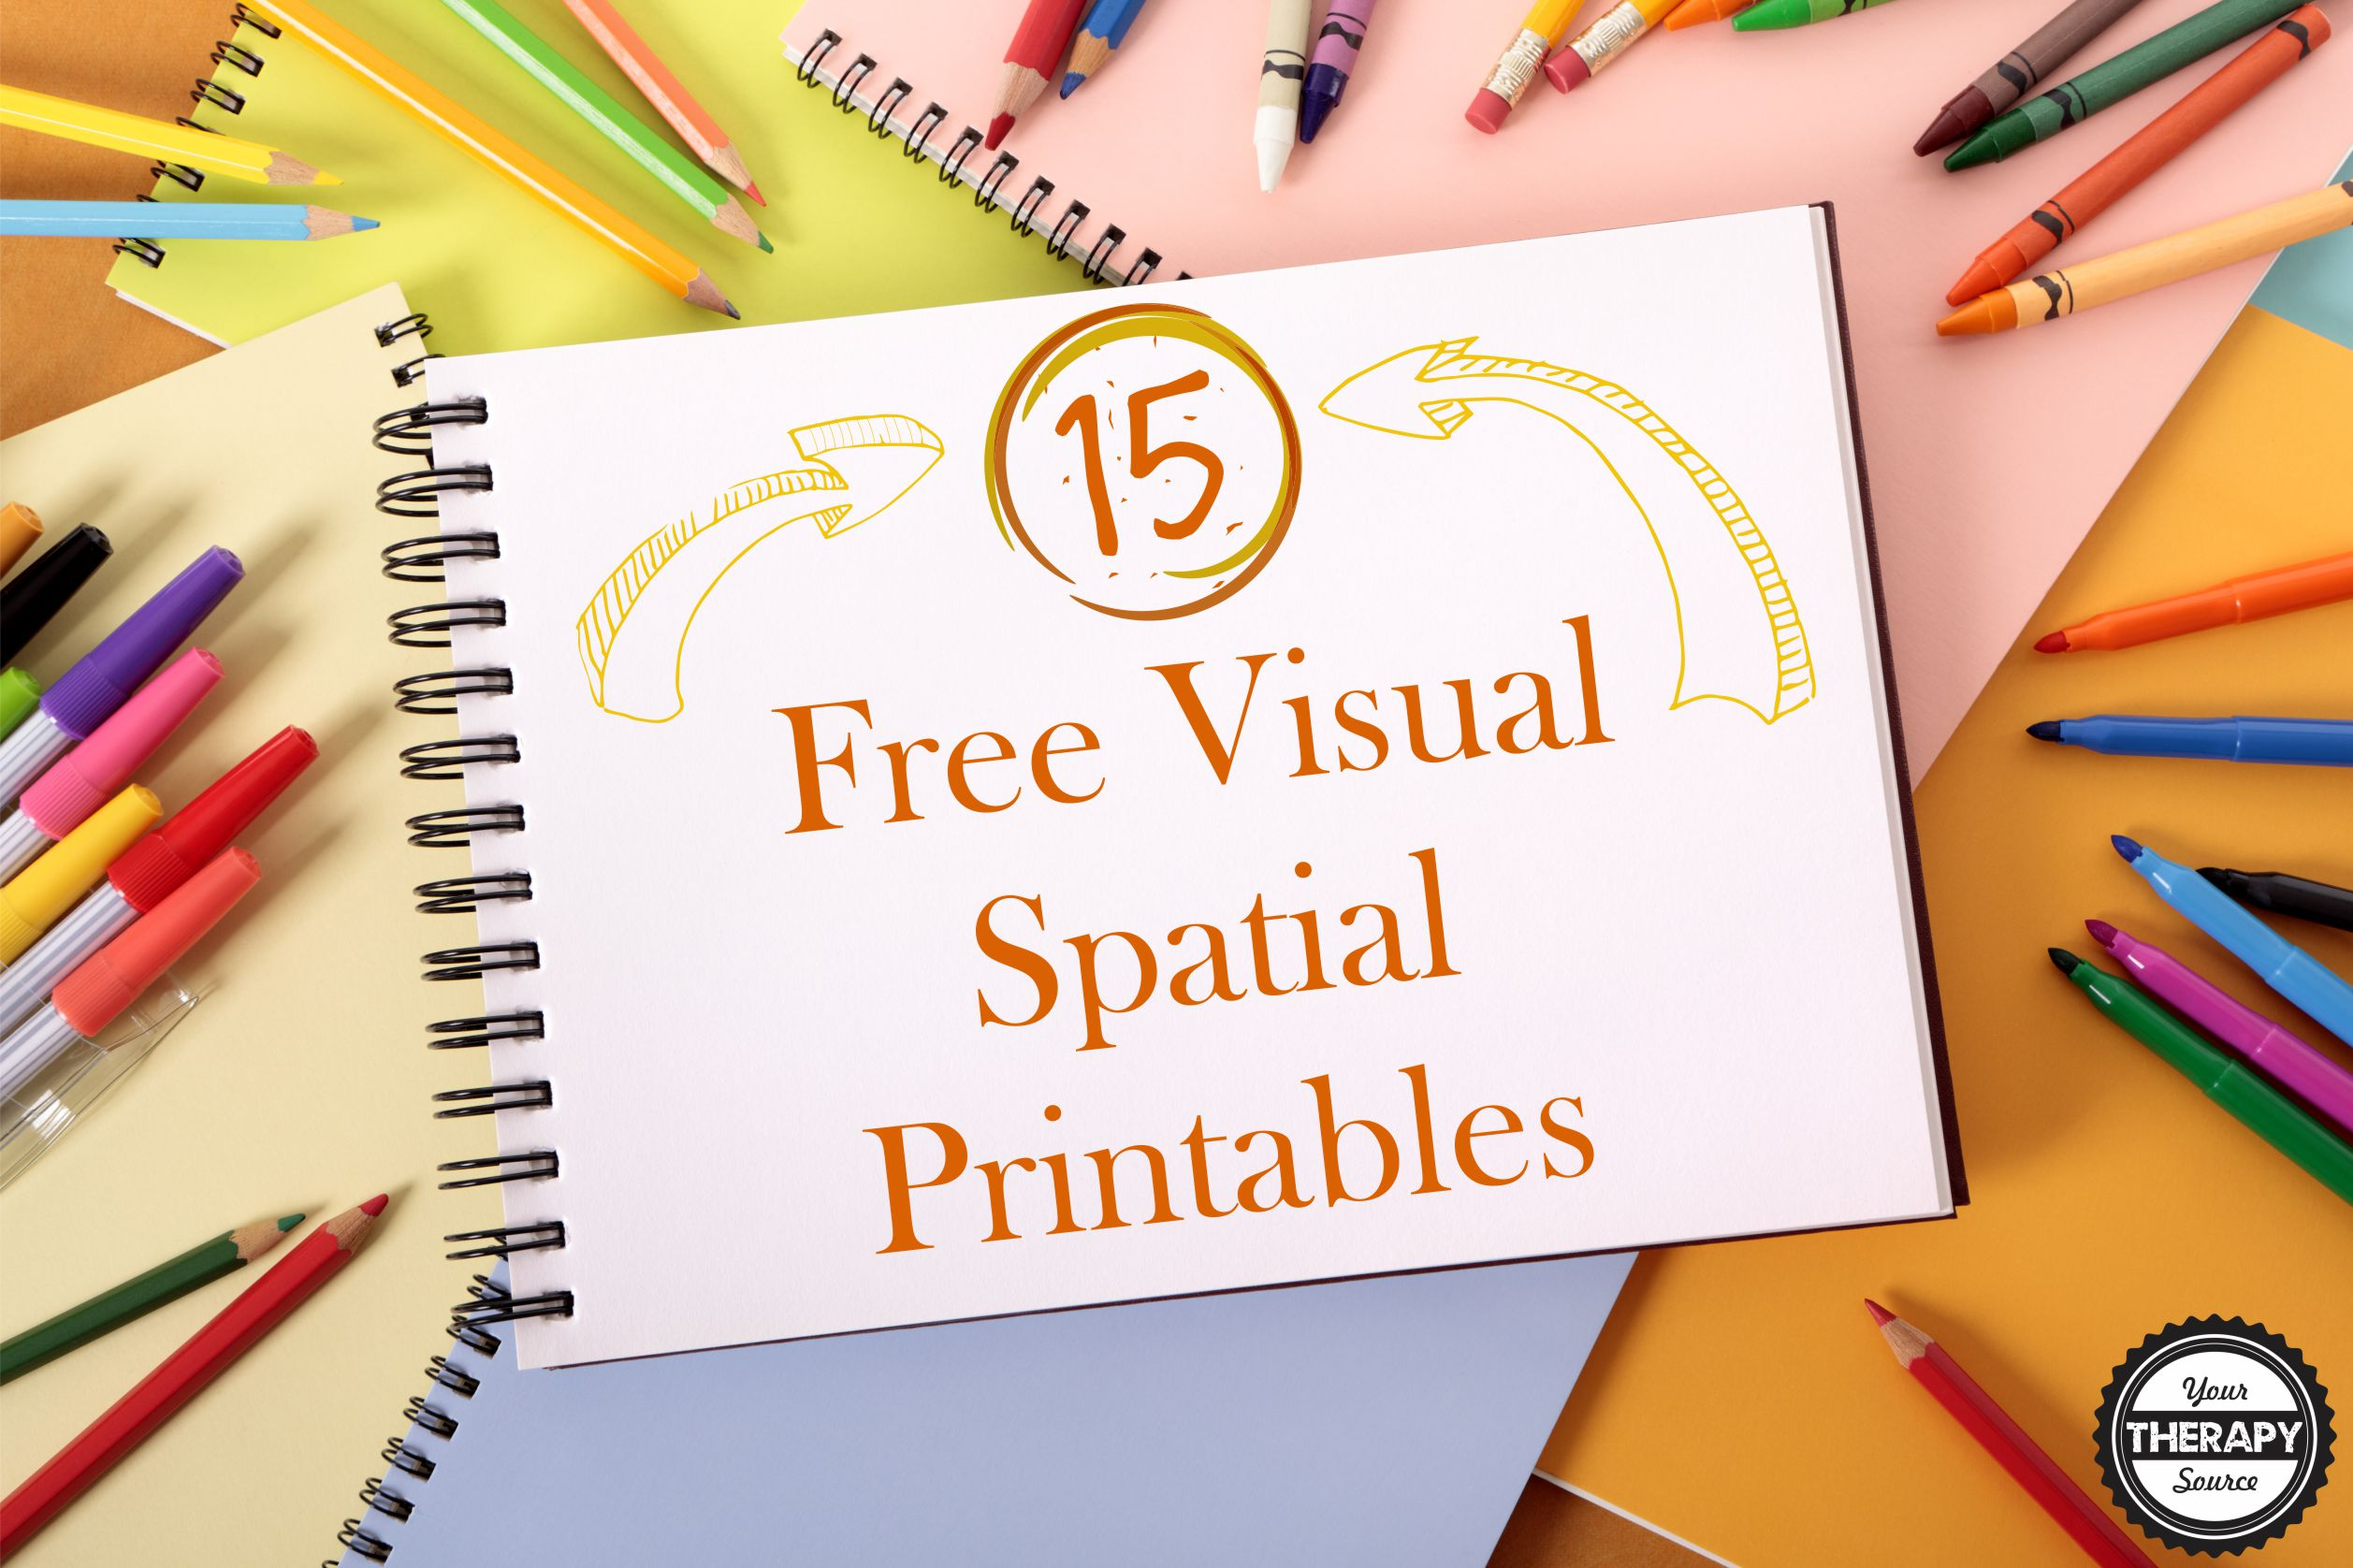 picture relating to Free Printable Speech Therapy Materials identified as 15 Absolutely free Visible Spatial Printables - Your Remedy Useful resource